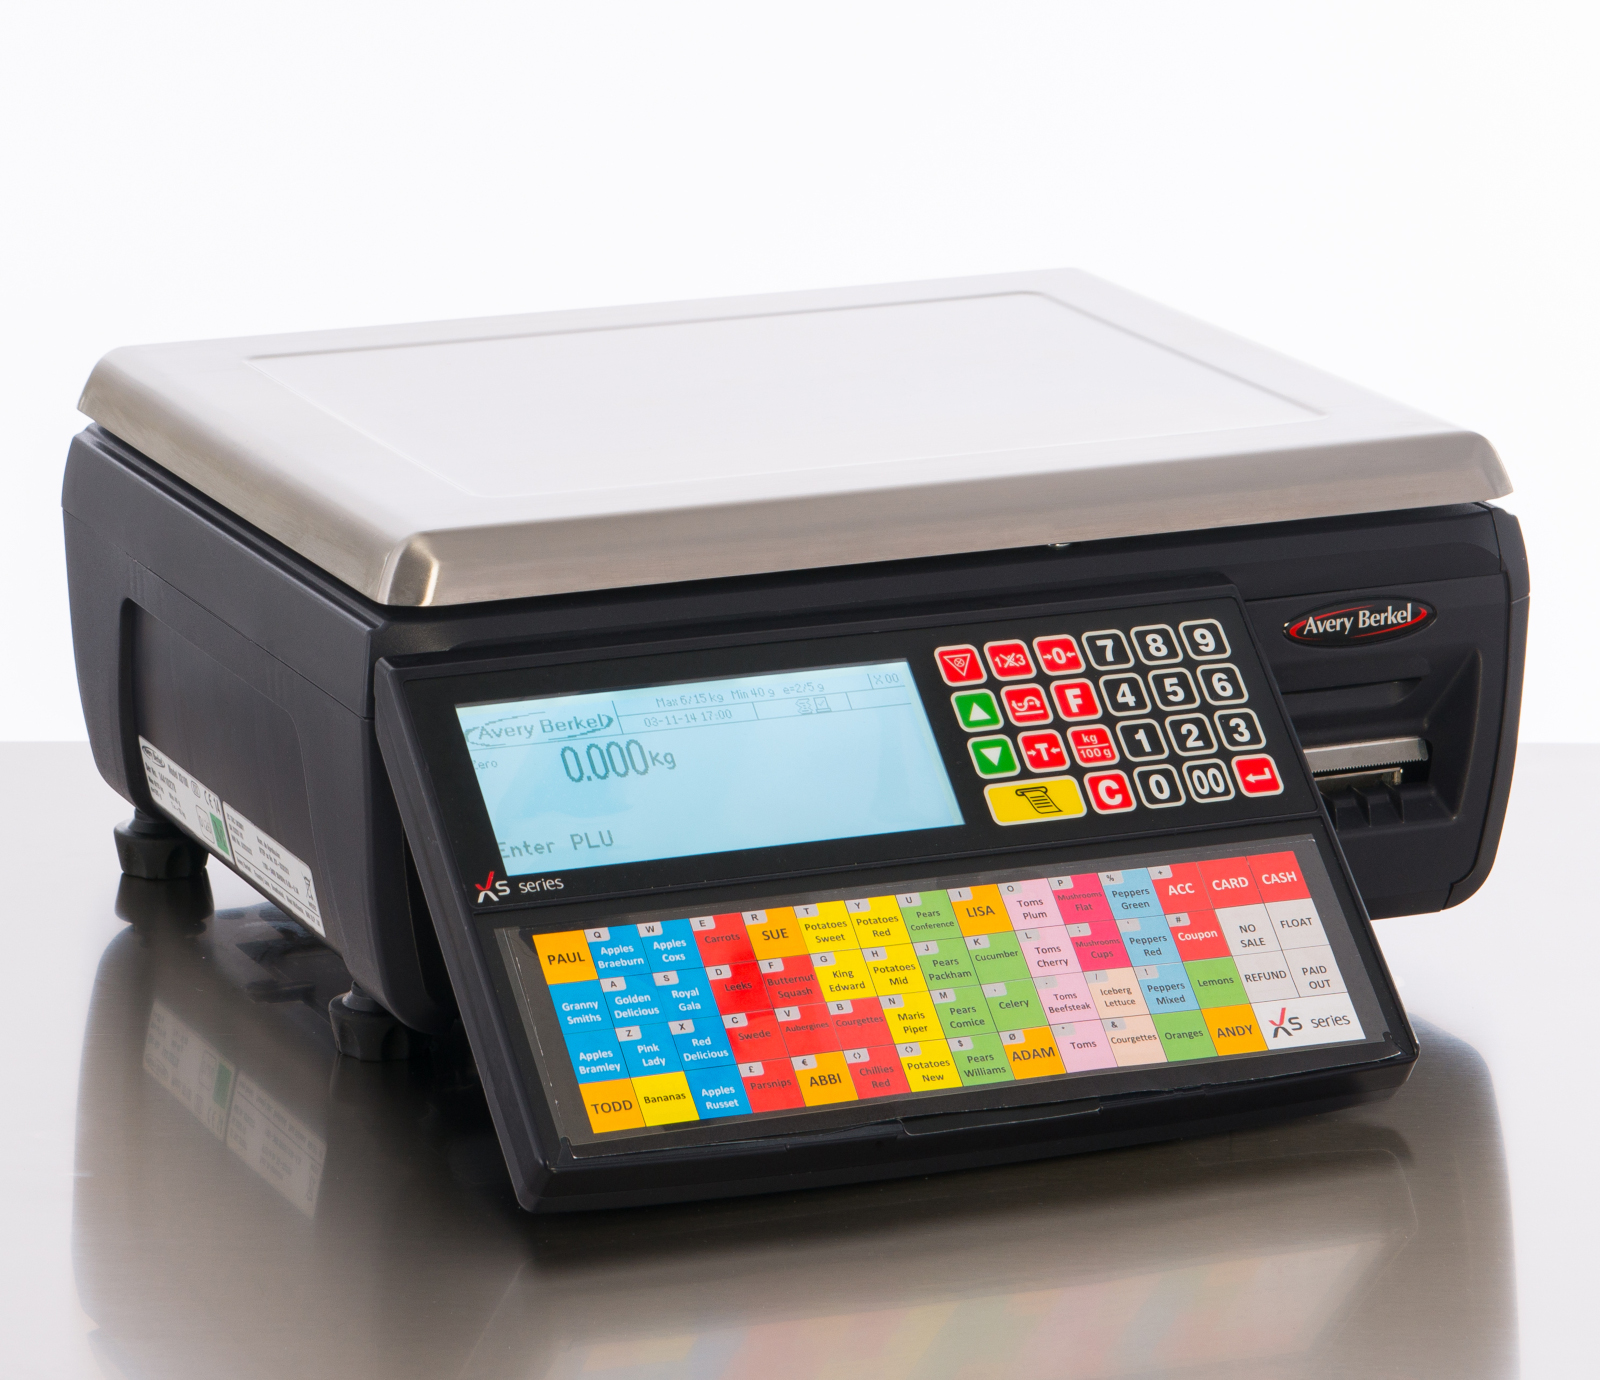 AVERY BERKEL Xs SERIES LABEL/RECEIPT PRINTING RETAIL SCALES